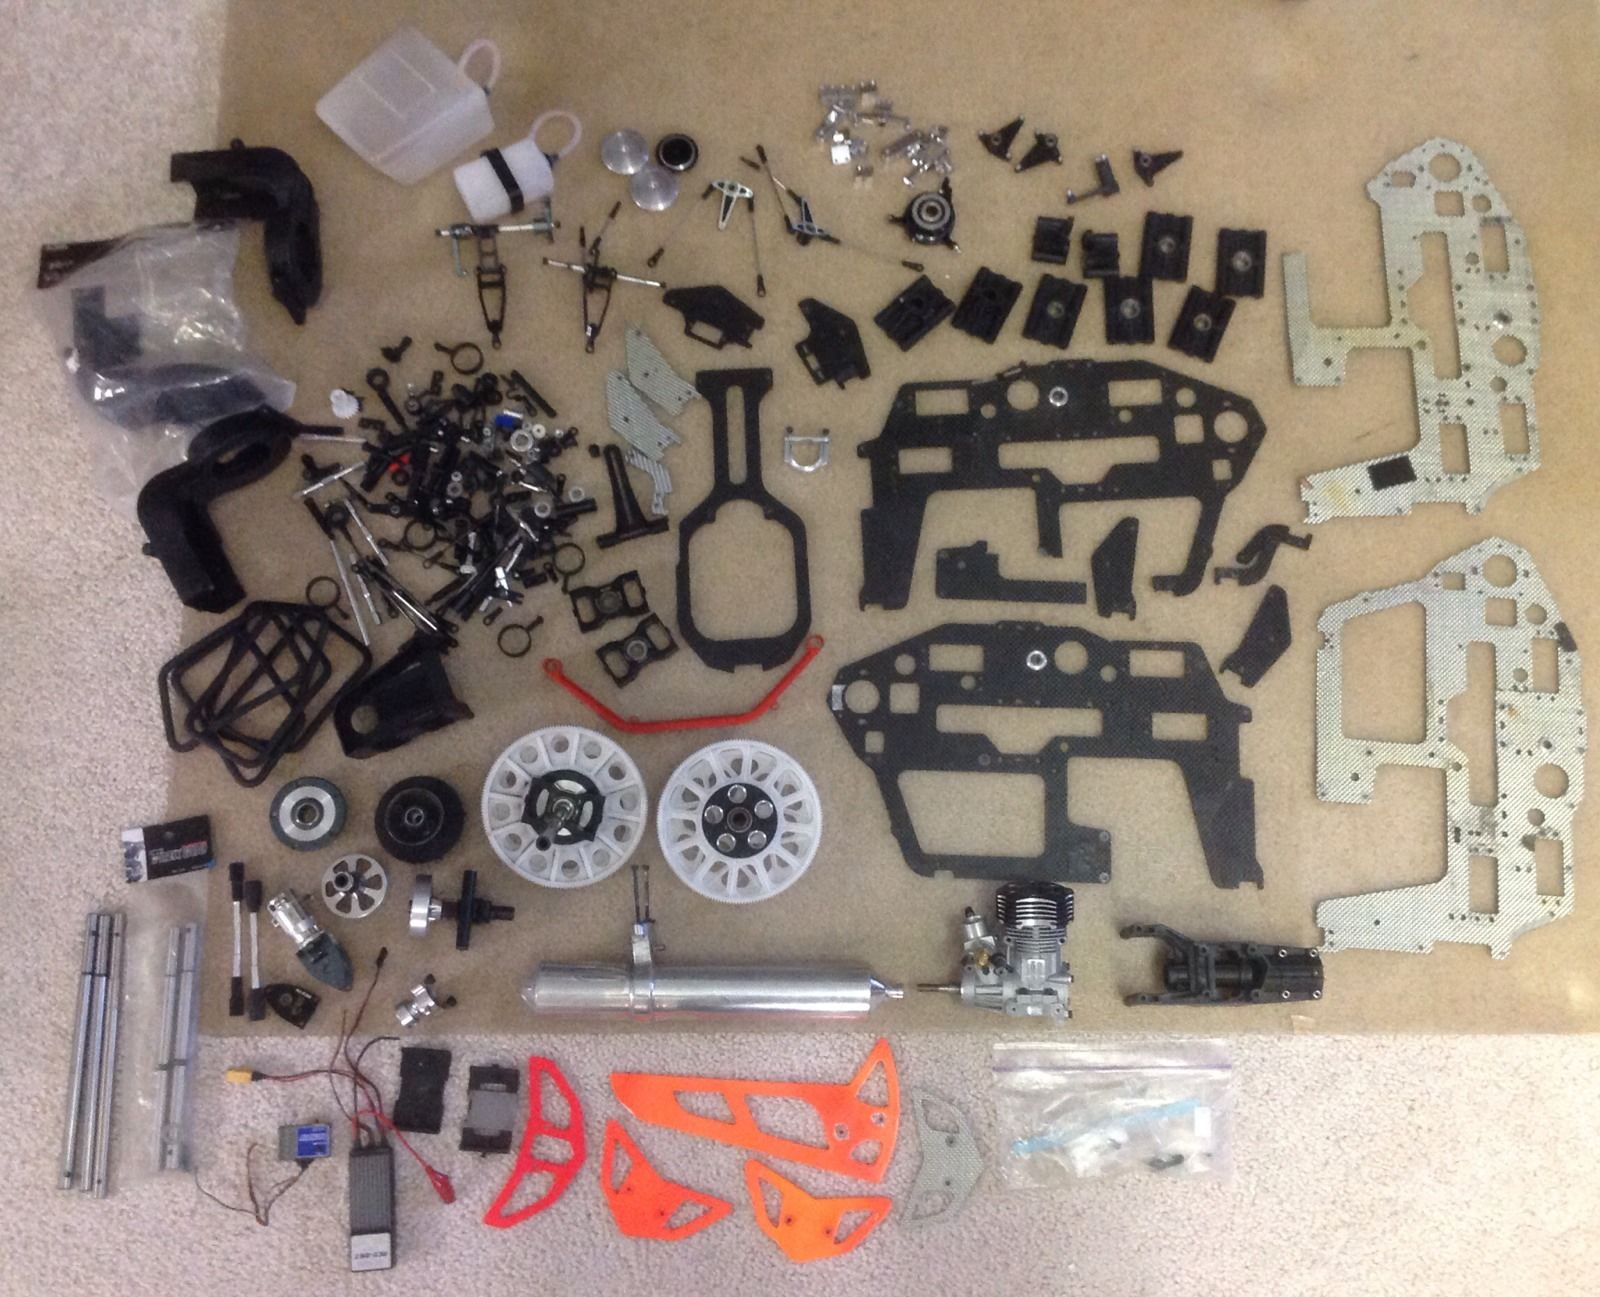 Click image for larger version  Name:rc helicopter parts 01.JPG Views:45 Size:296.4 KB ID:1991206